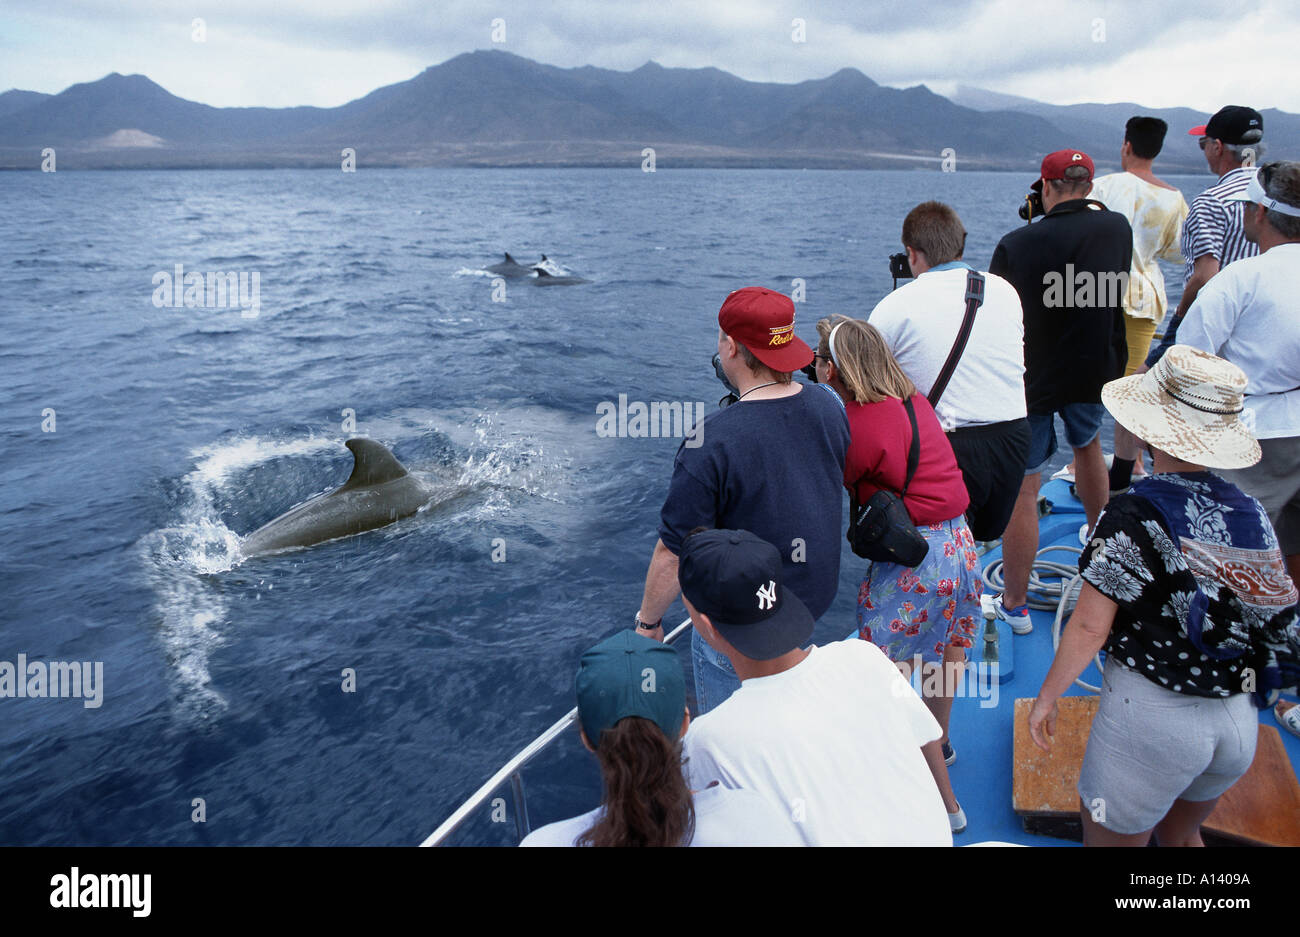 dolphin watching FUERTEVENTURA Fuerte ventura CANARY ISLANDS tourists tourism sea seaside boat - Stock Image